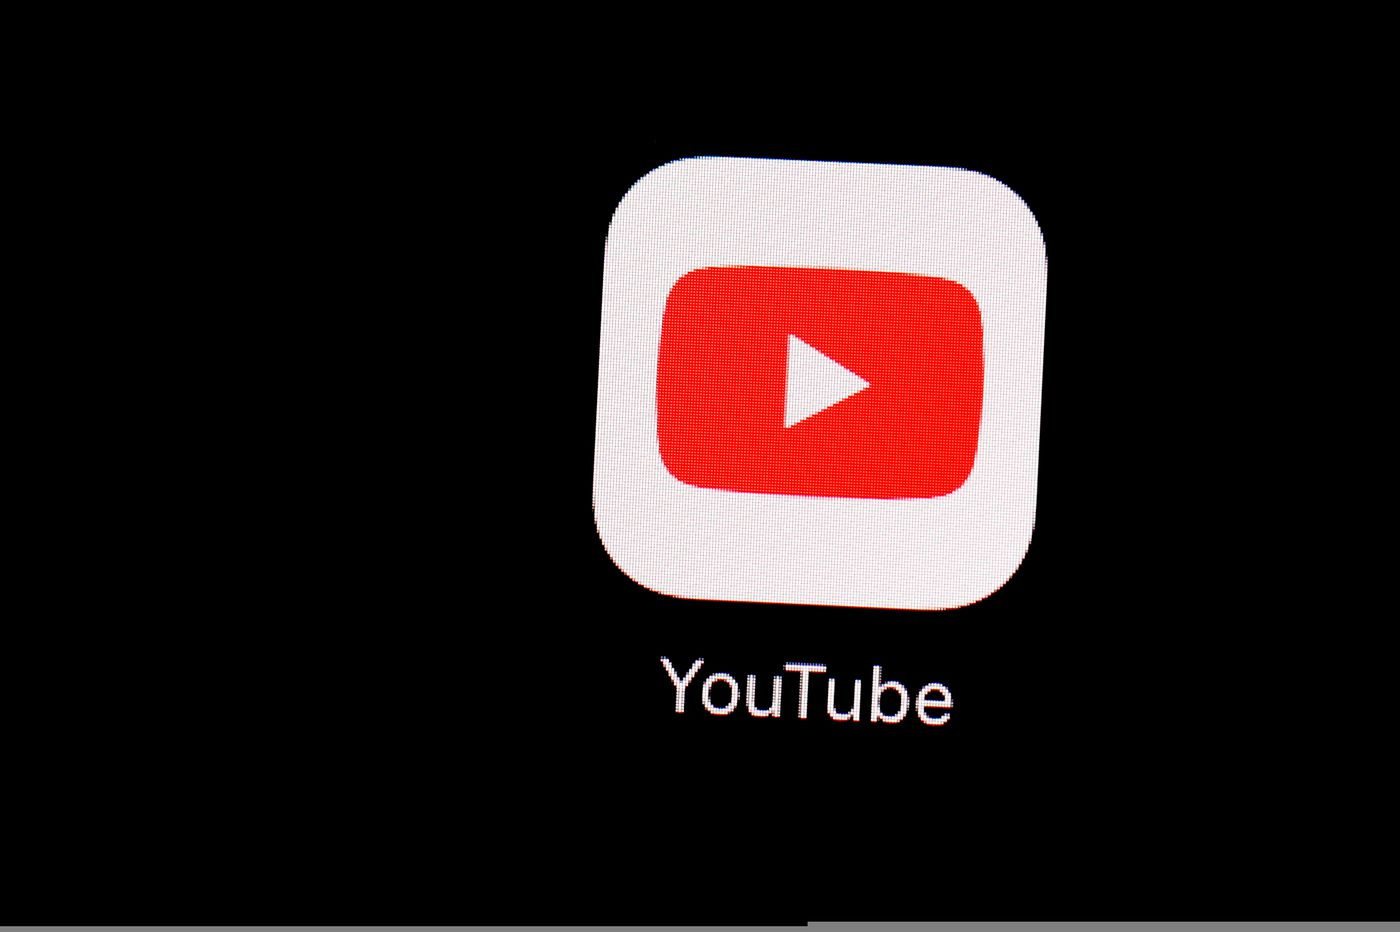 YouTube fined $170 million for violating kids' privacy law